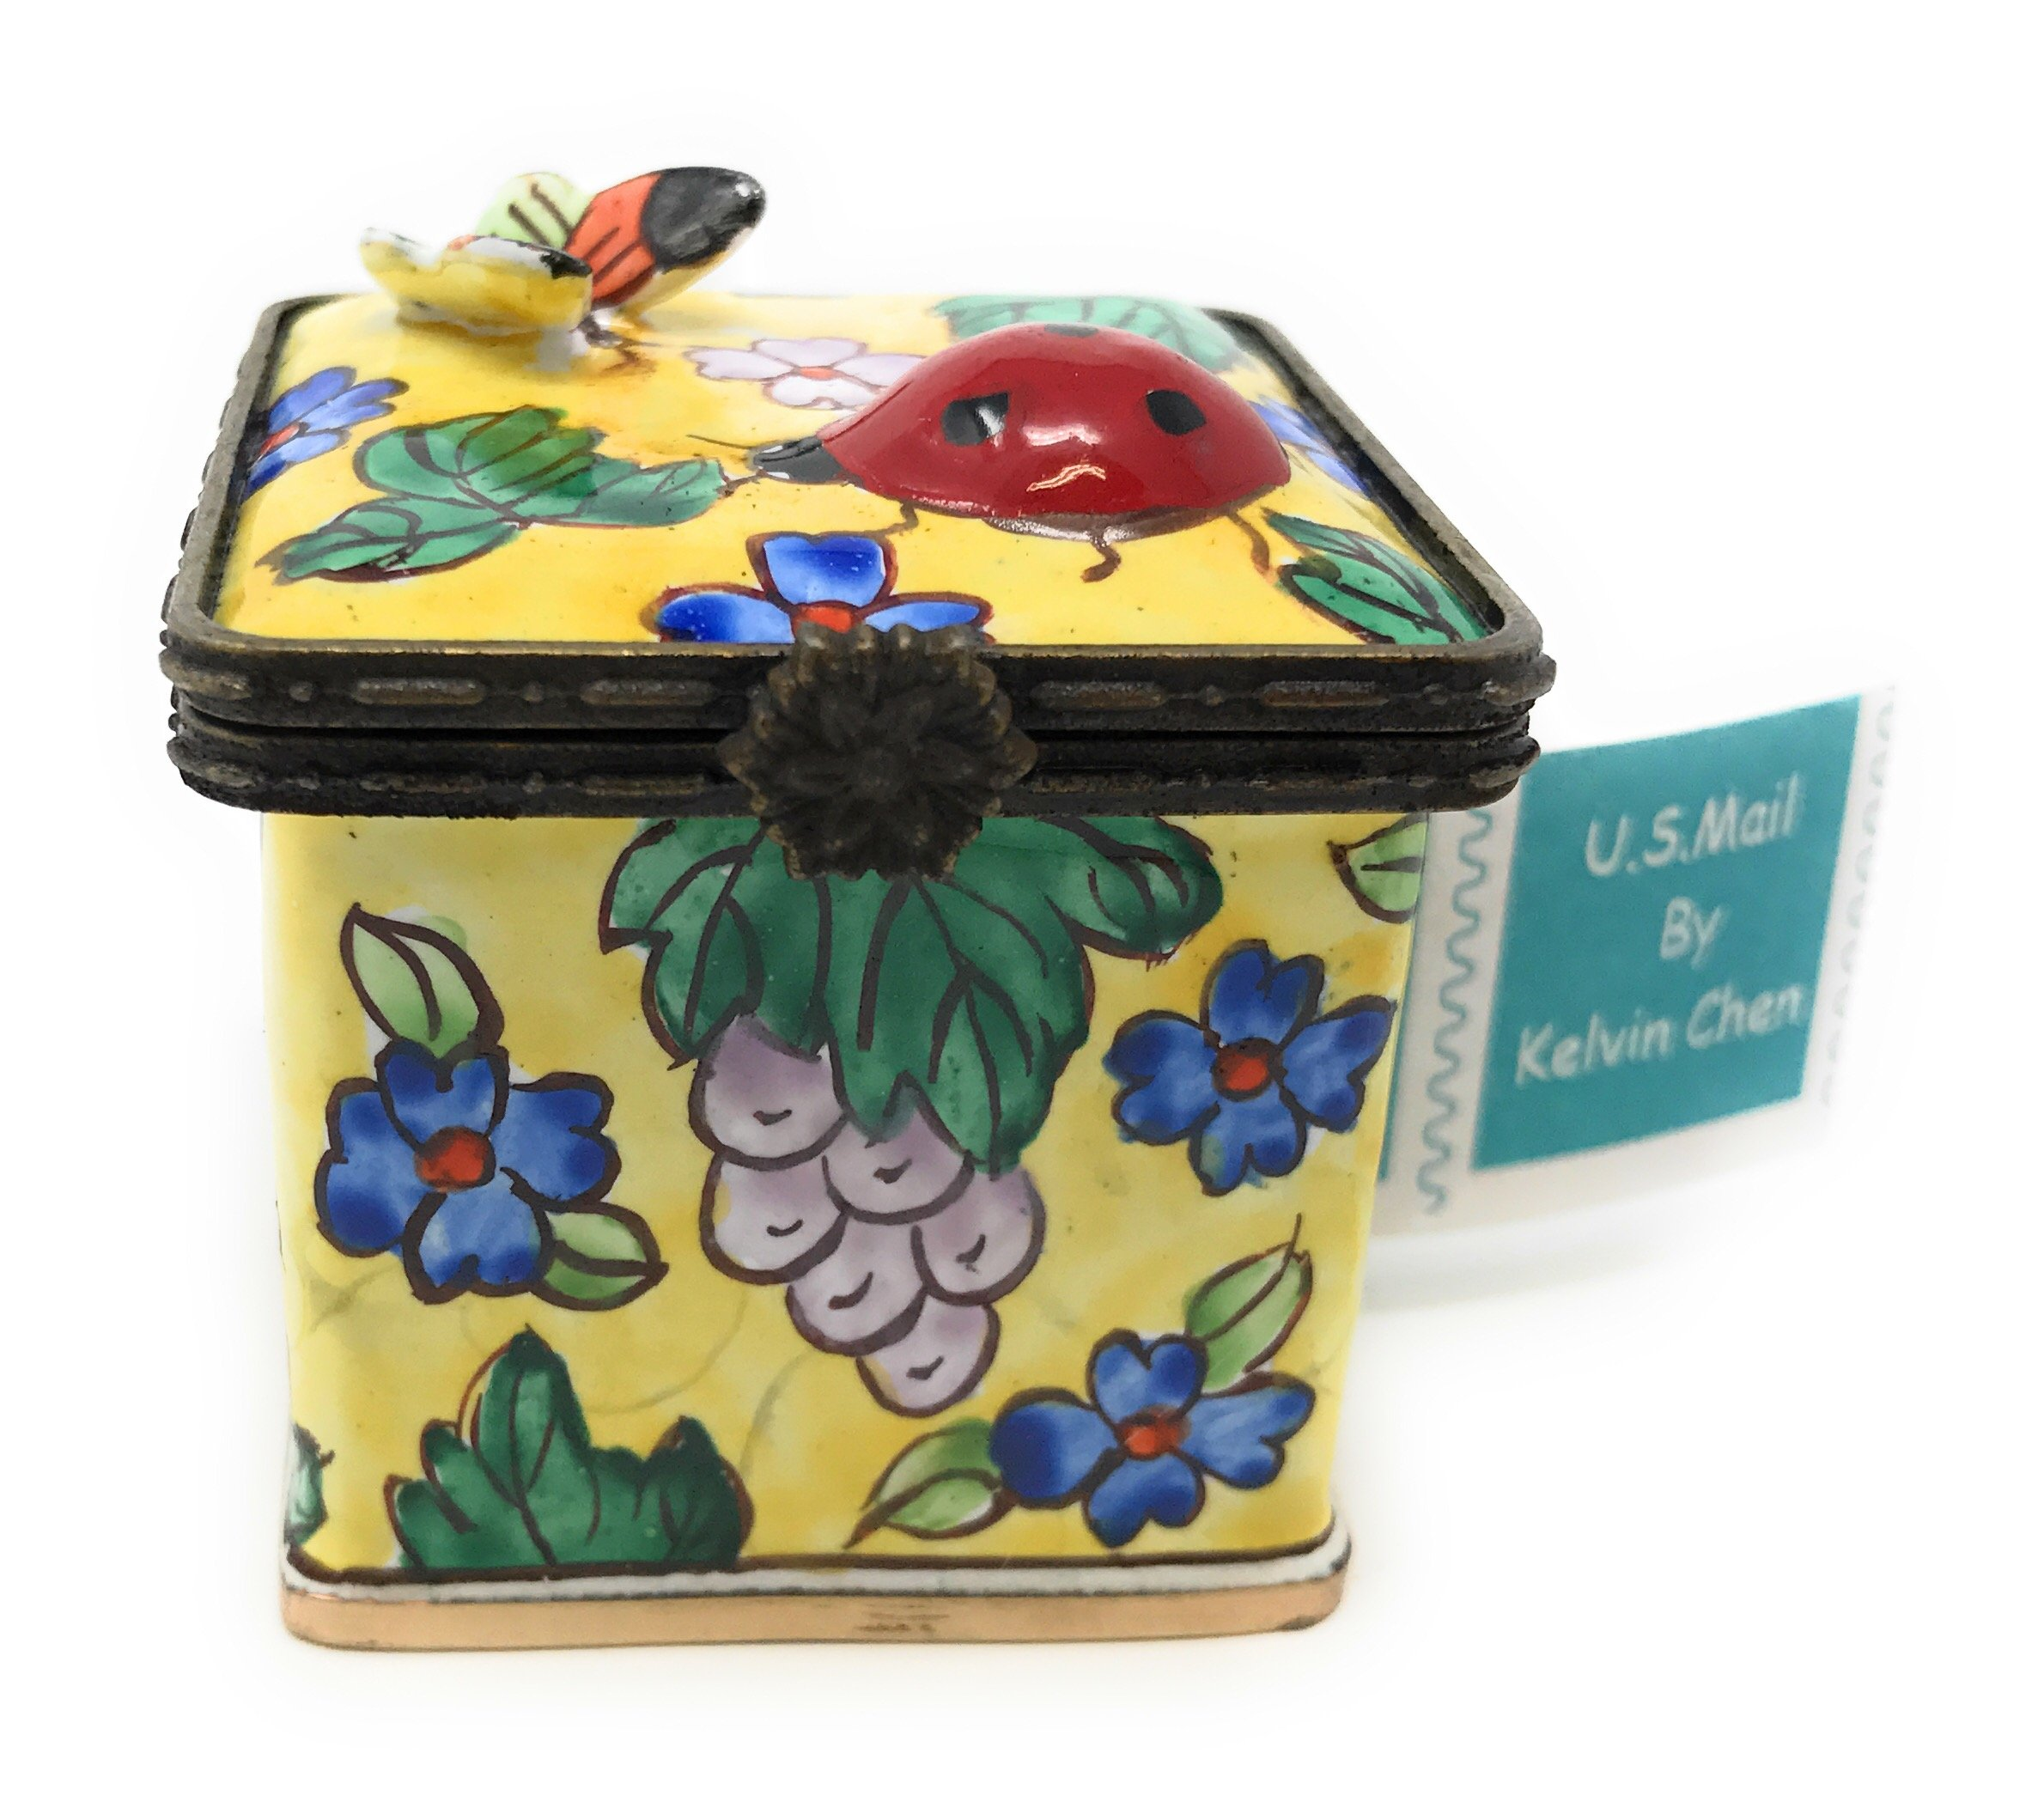 Kelvin Chen Enameled Postage Stamp Dispenser - Floral with 3-D Ladybug and Butterfly, 1.75 Inch Square by Kelvin Chen